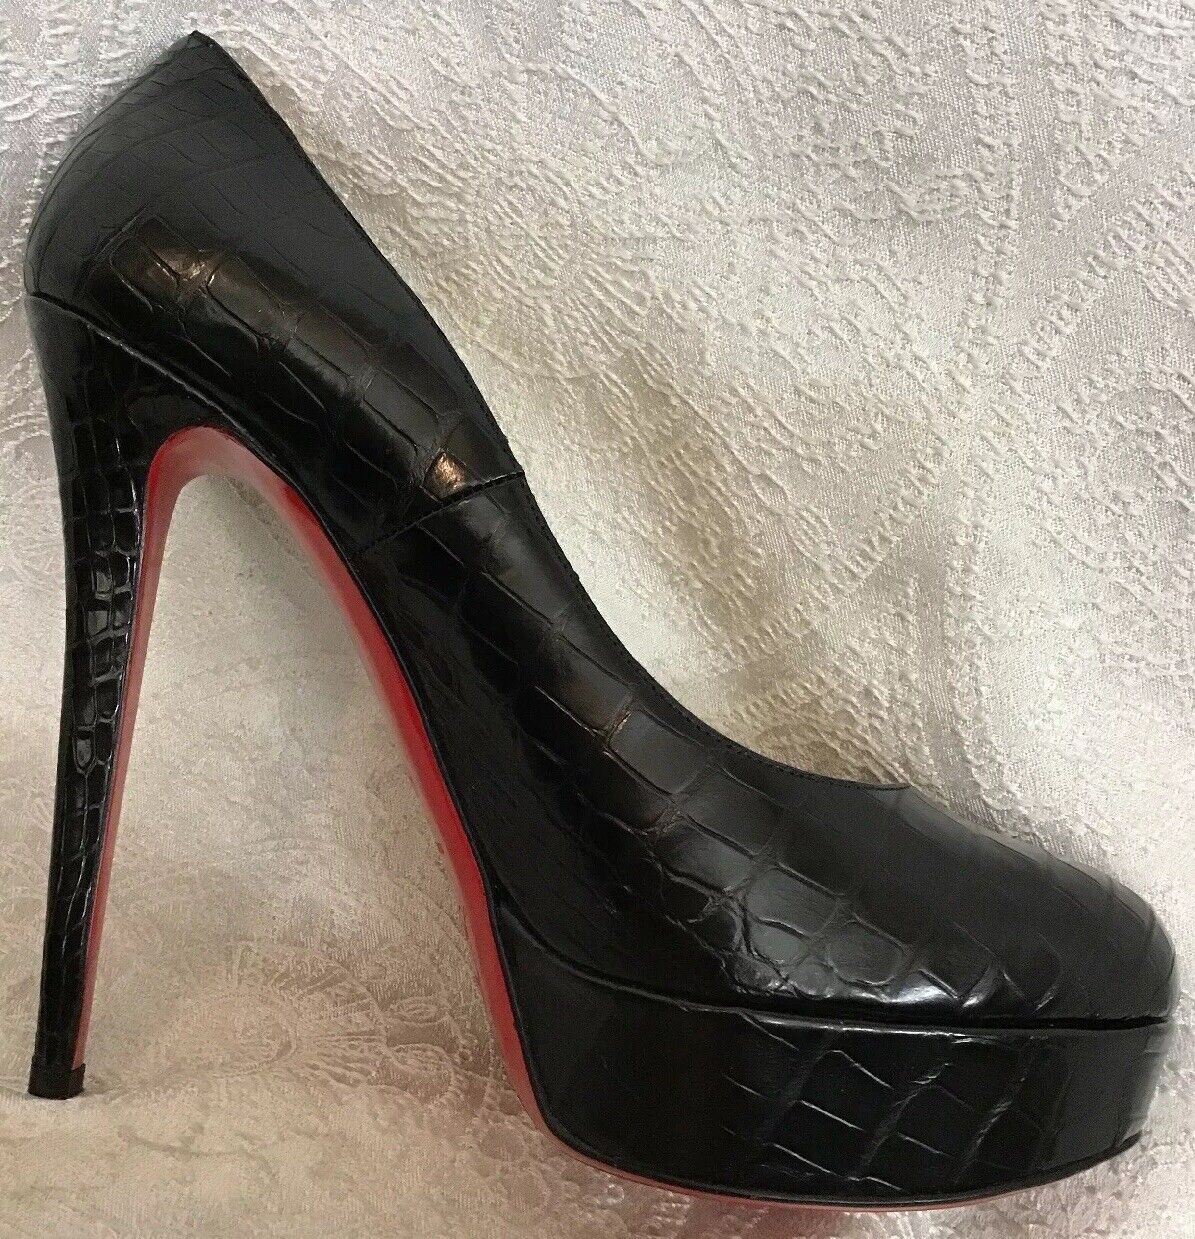 Christian Louboutin shoes Black Alligator Platform New Size 40 40 40 1 2 Size 9 768944